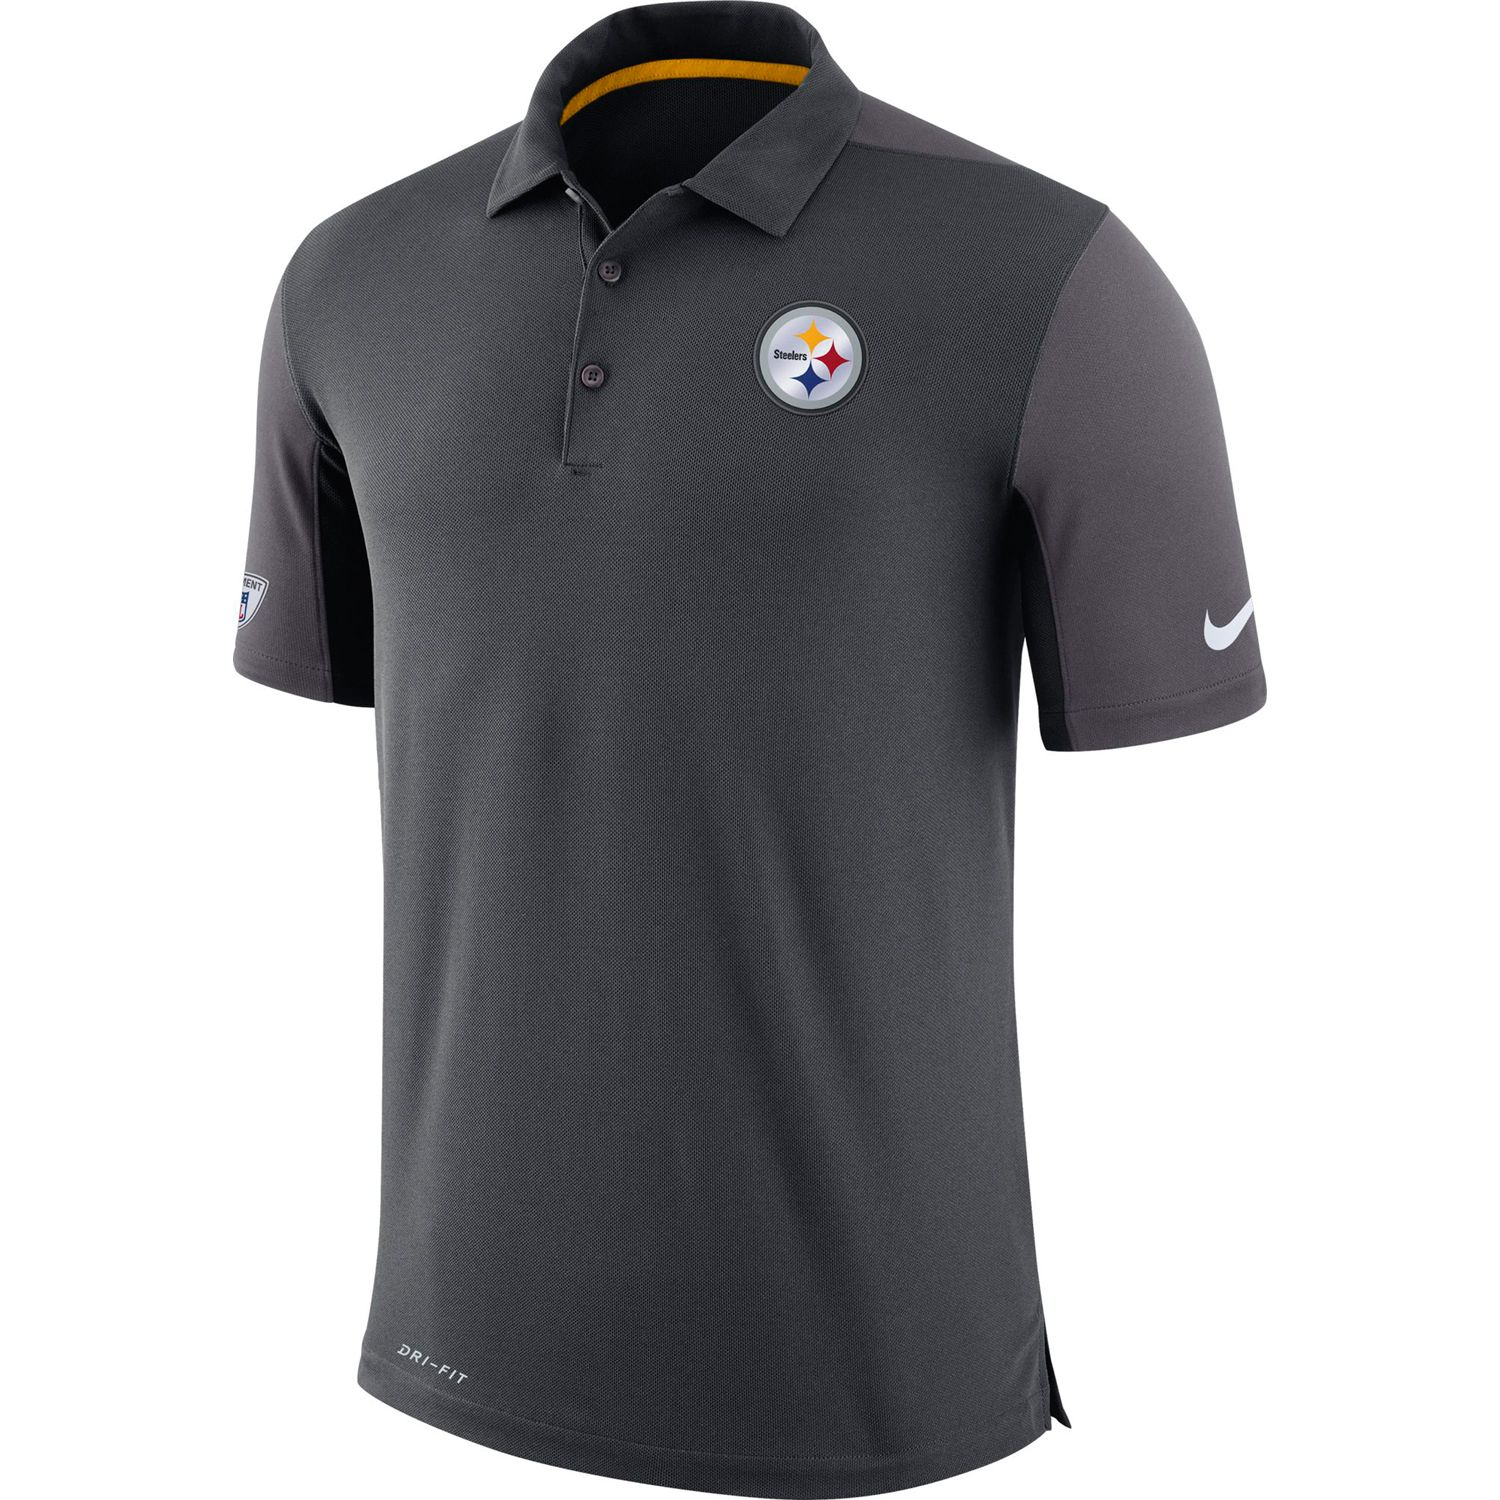 Pittsburgh Steelers Team Issue Dri-FIT Polo